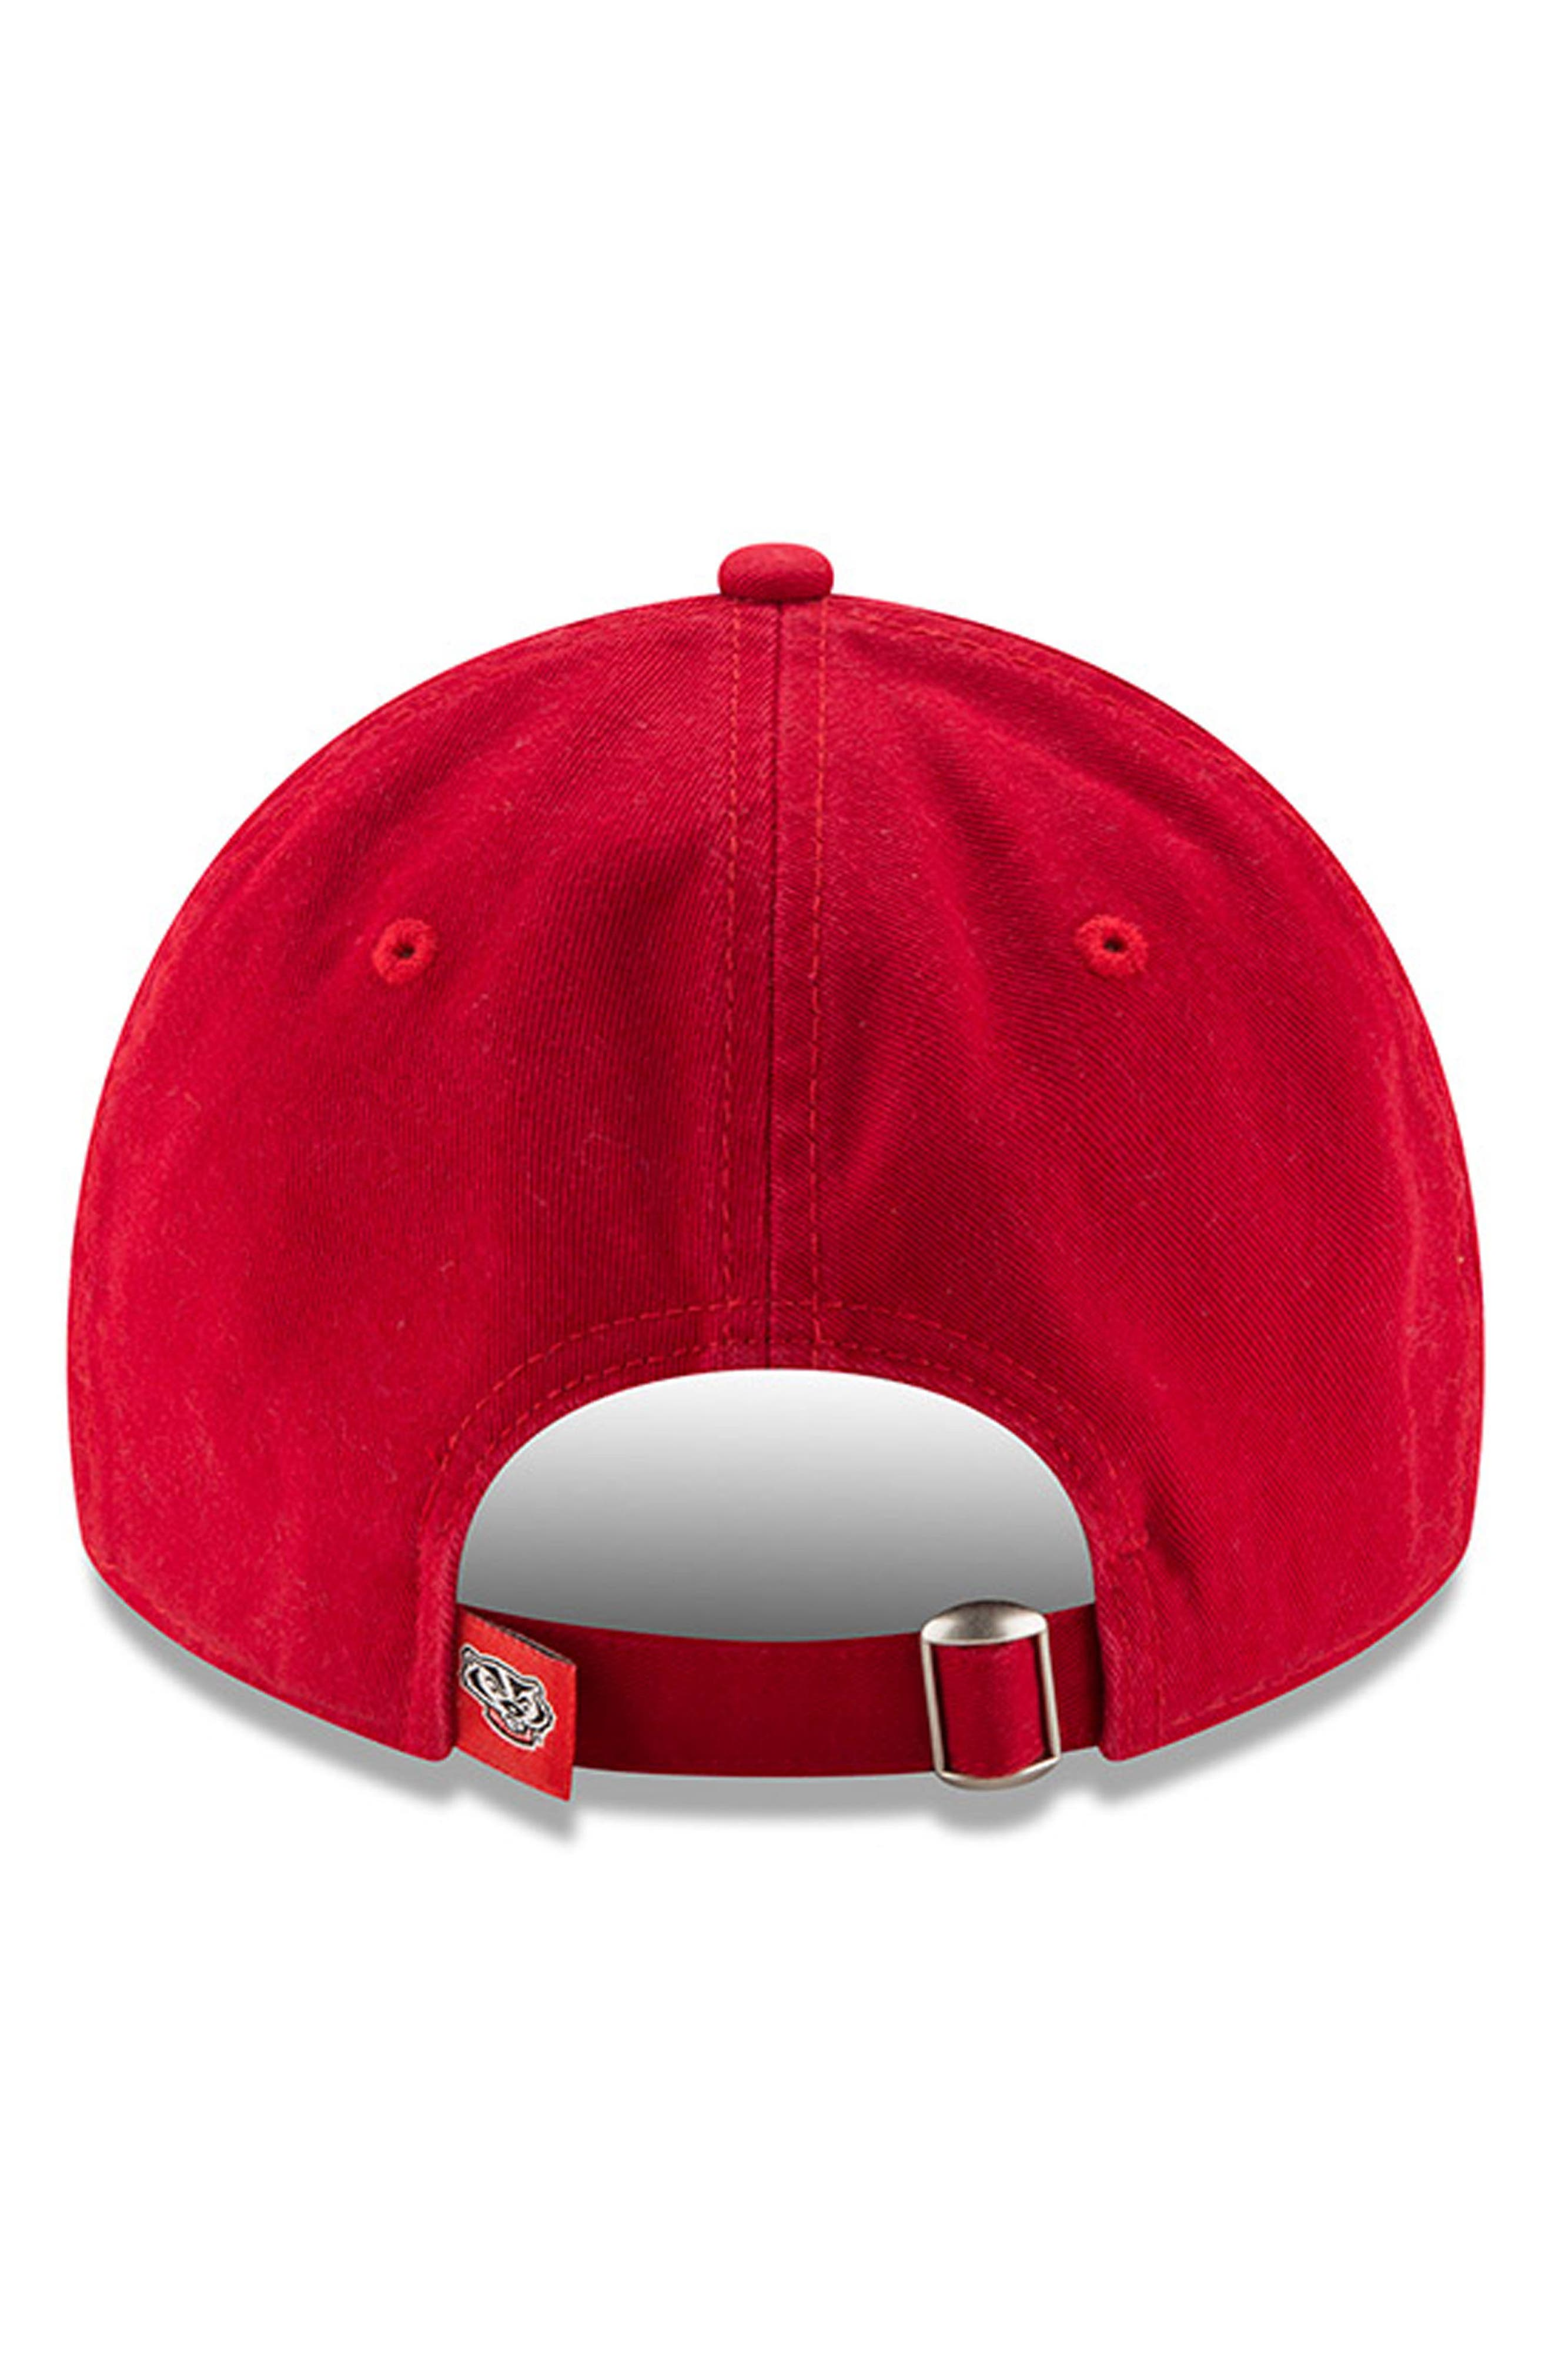 New Era Collegiate Core Classic - Wisconsin Badgers Baseball Cap,                             Alternate thumbnail 3, color,                             600